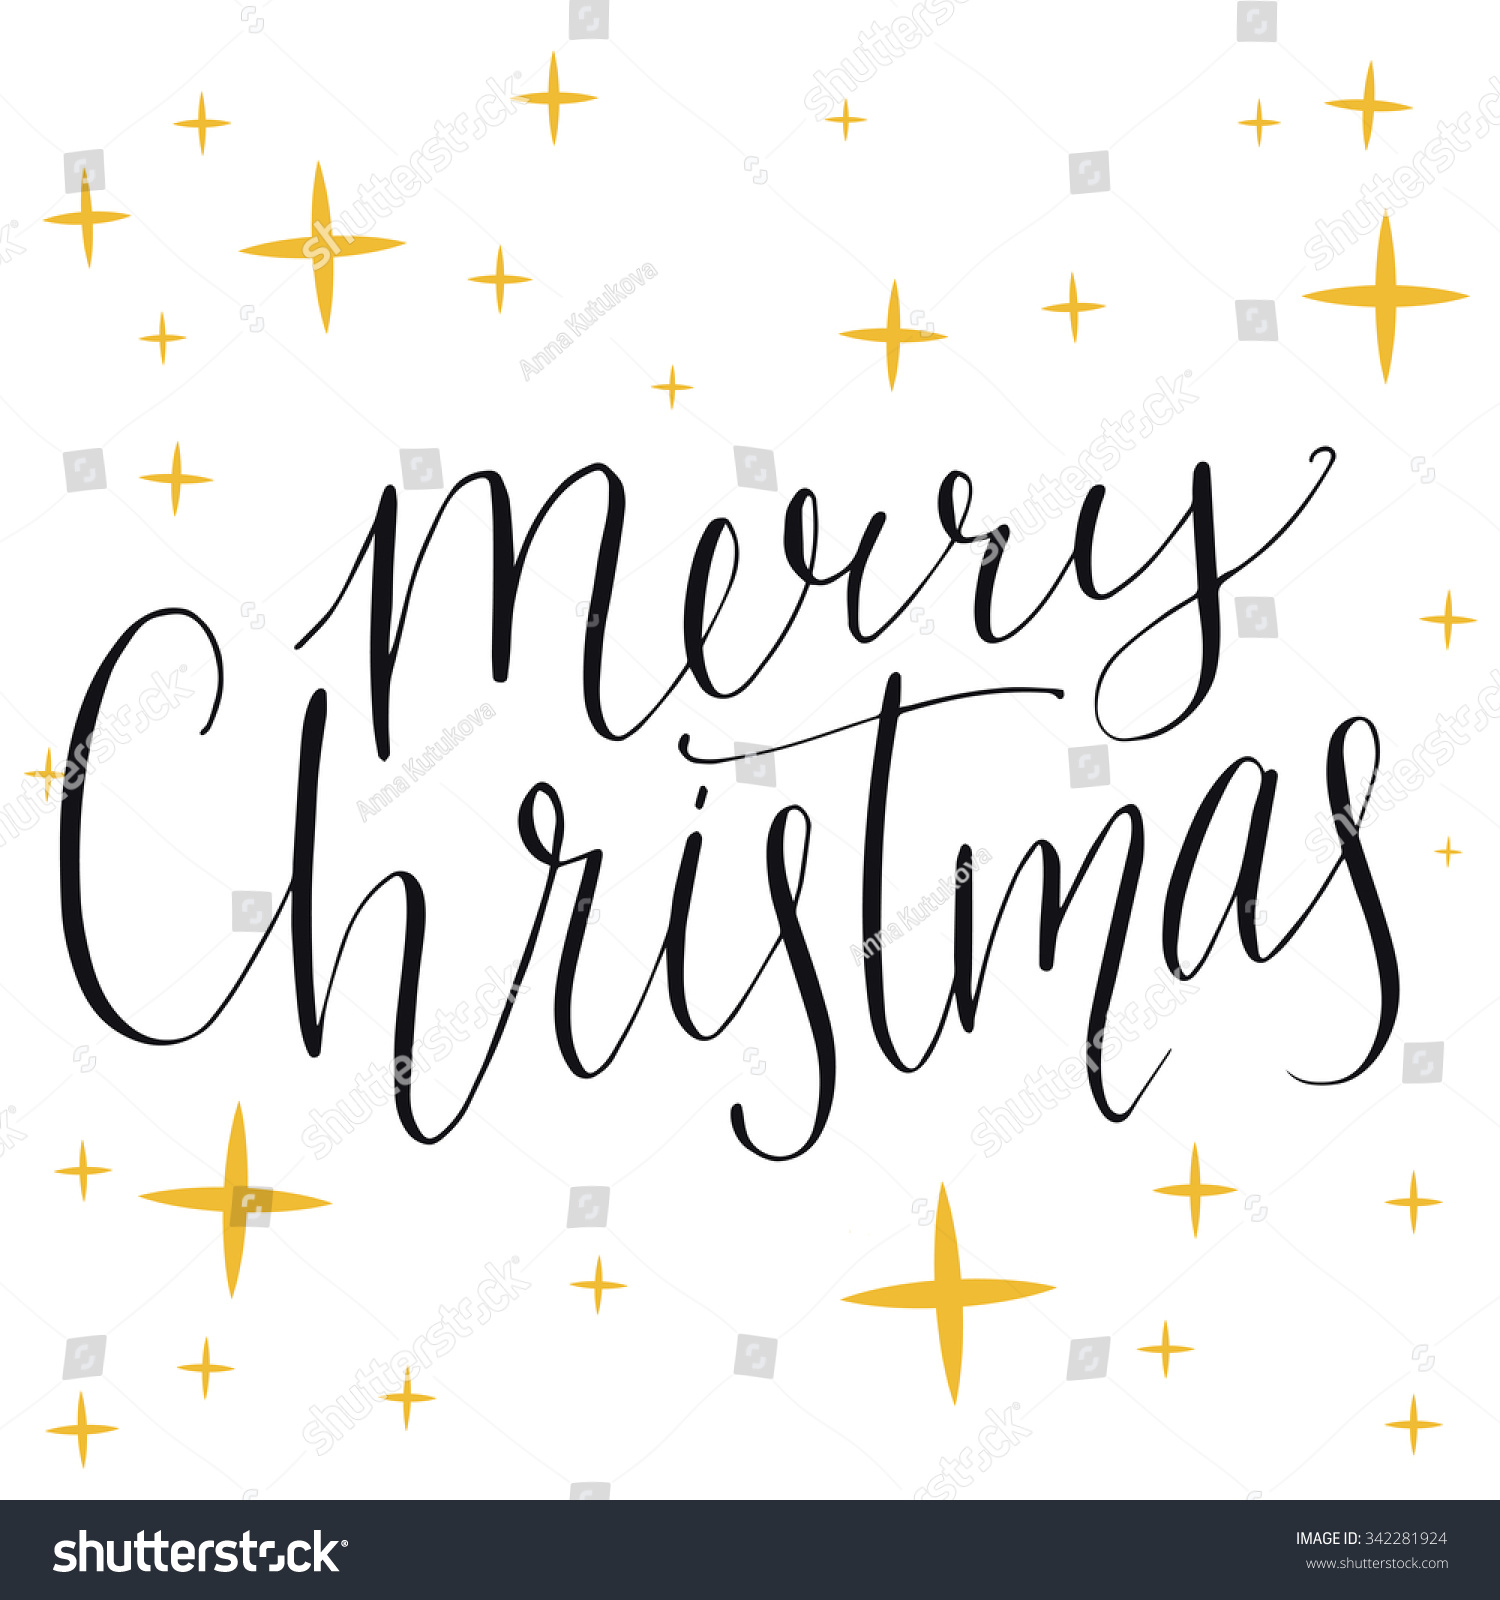 Merry christmas text modern calligraphy type made with